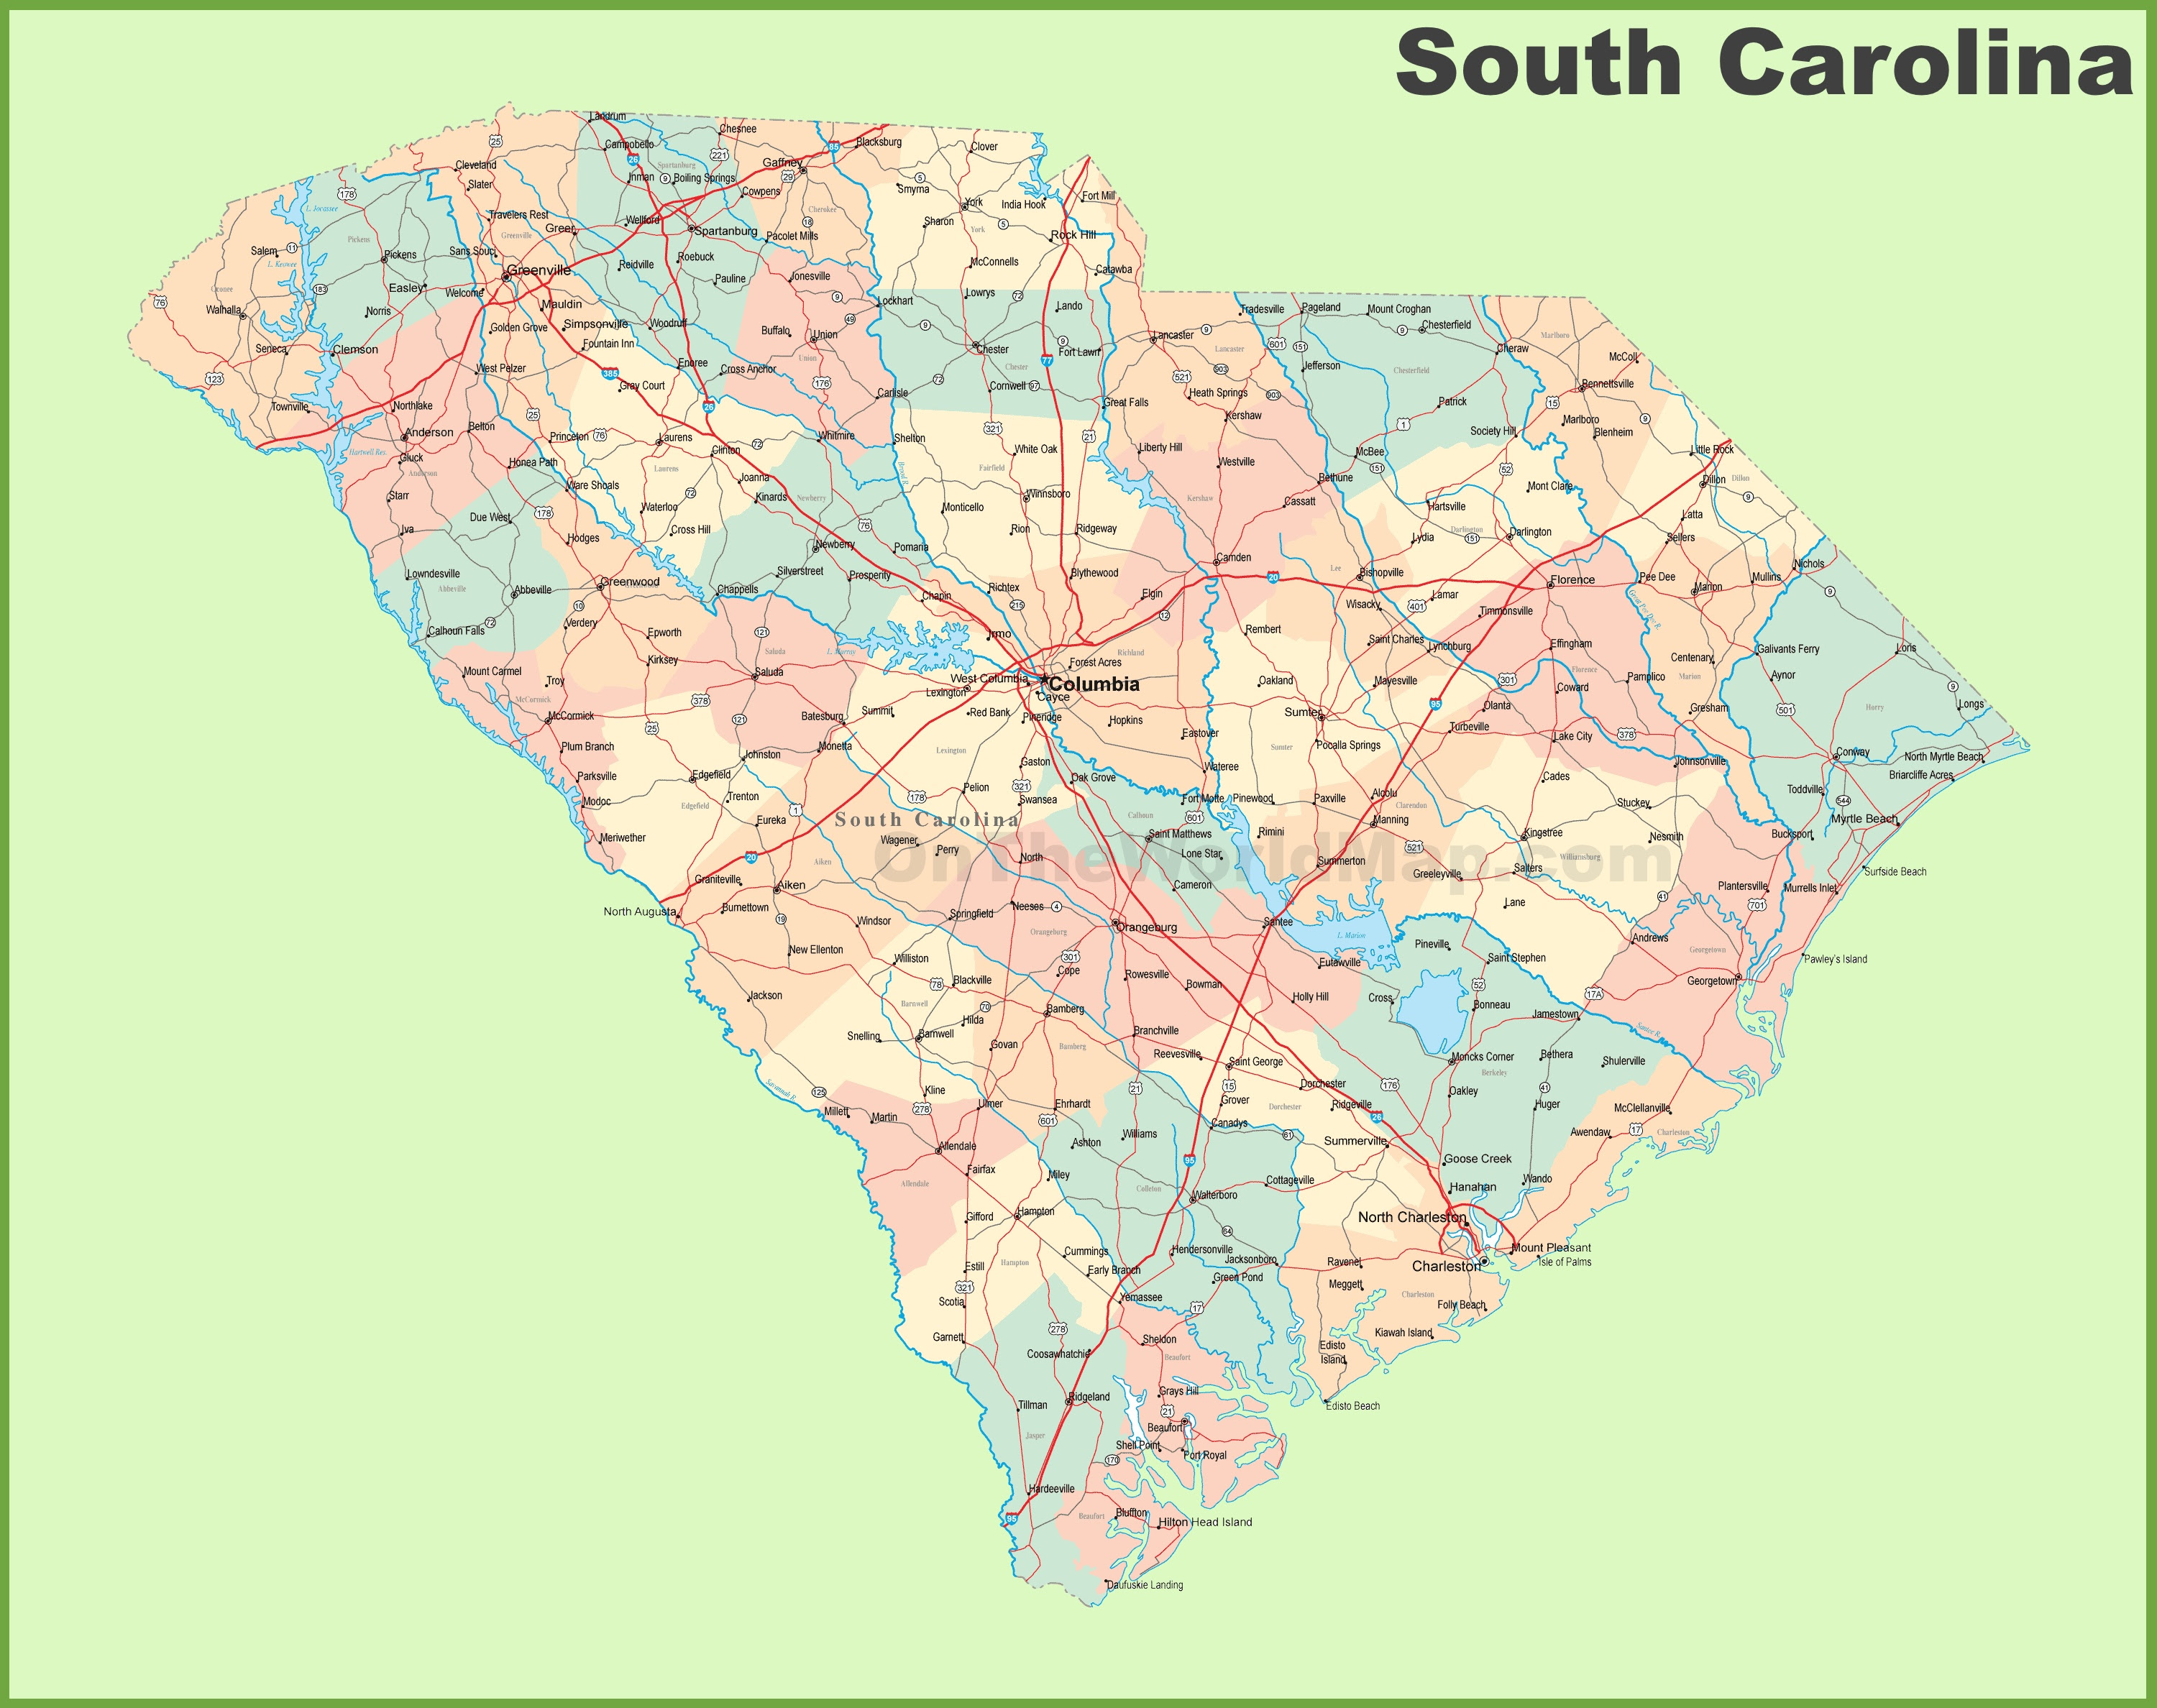 Road Map Of South Carolina With Cities